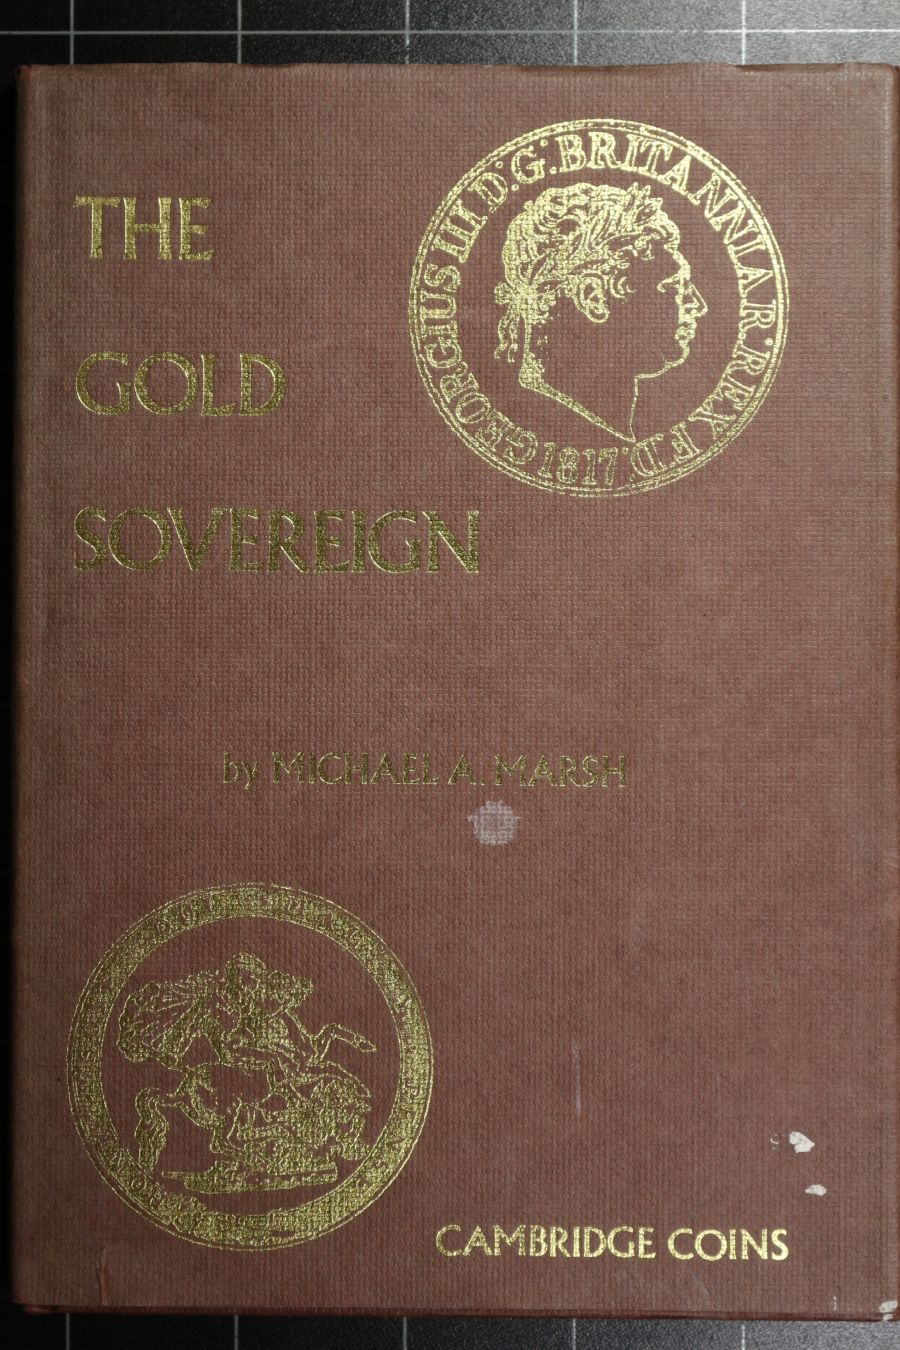 The Gold Sovereign by Michael Marsh, First edition 1980